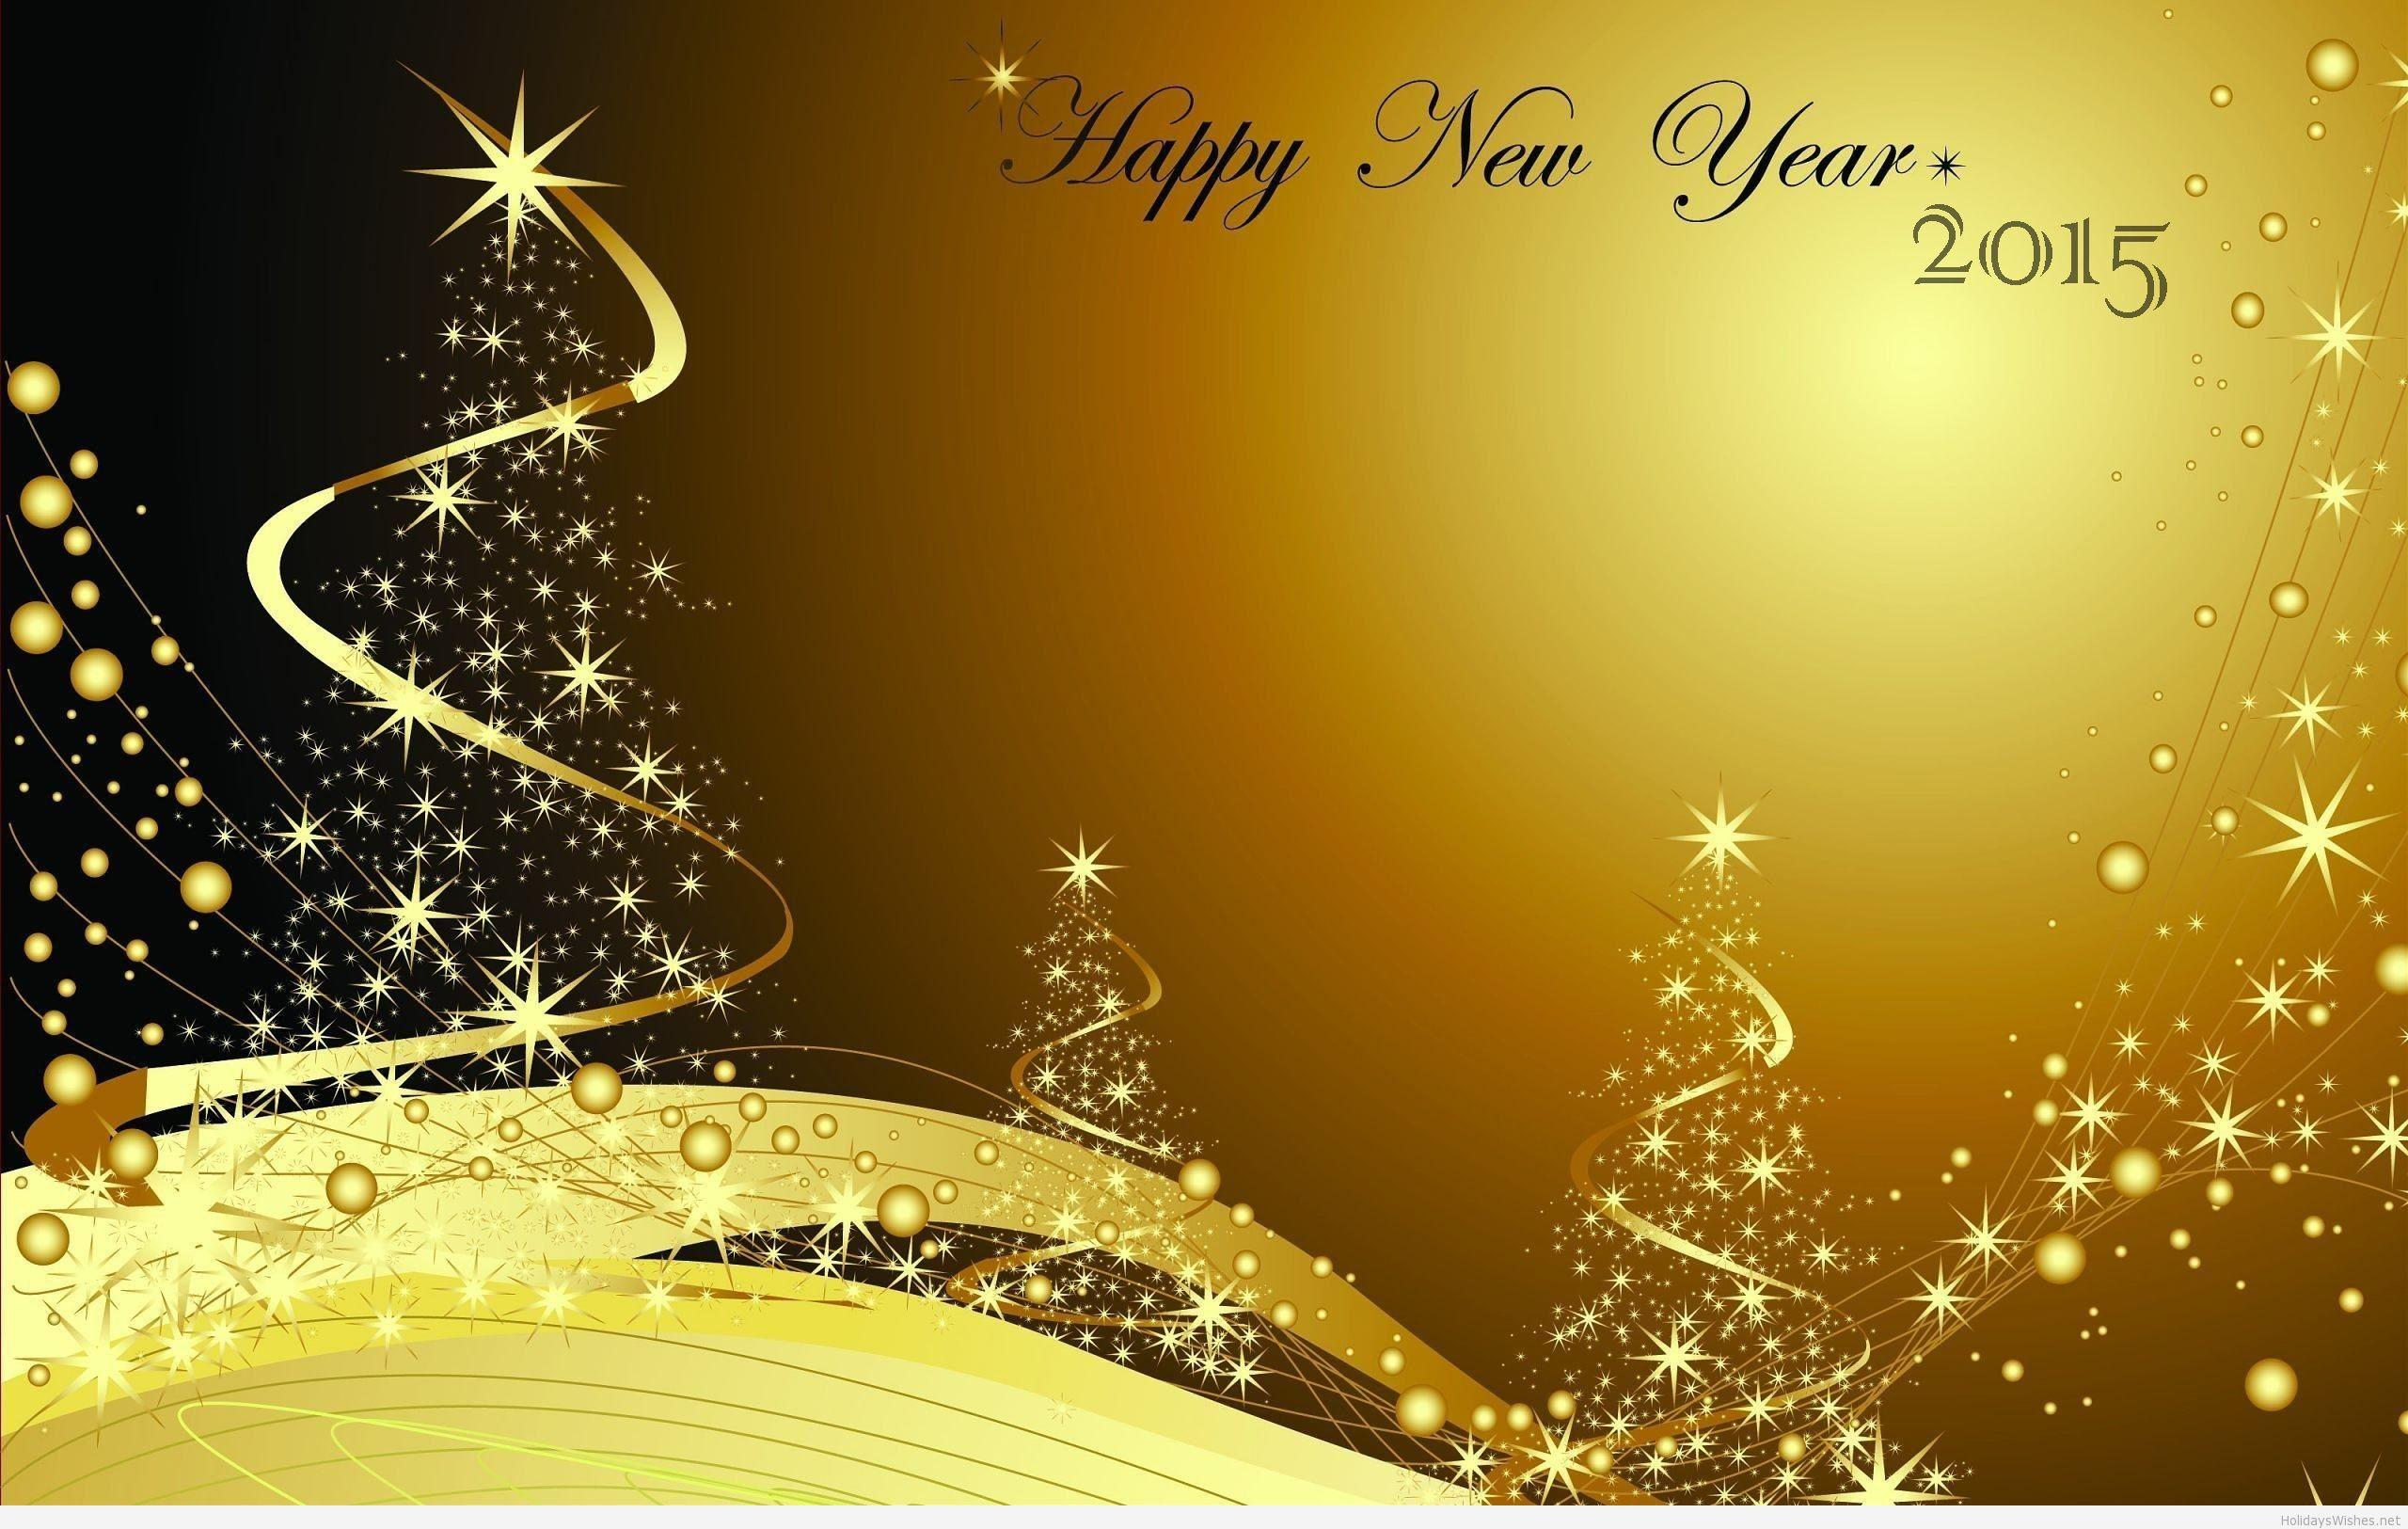 New Year Greetings Wallpapers 2015 Wallpaper Cave